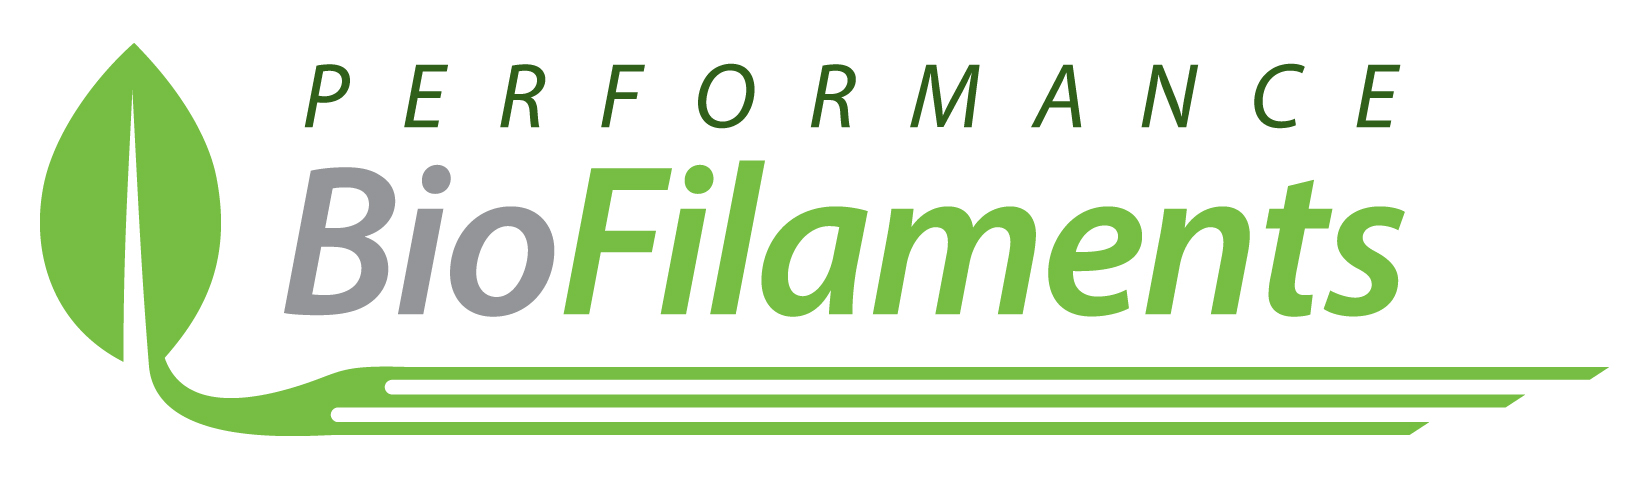 Performance BioFilaments Inc.